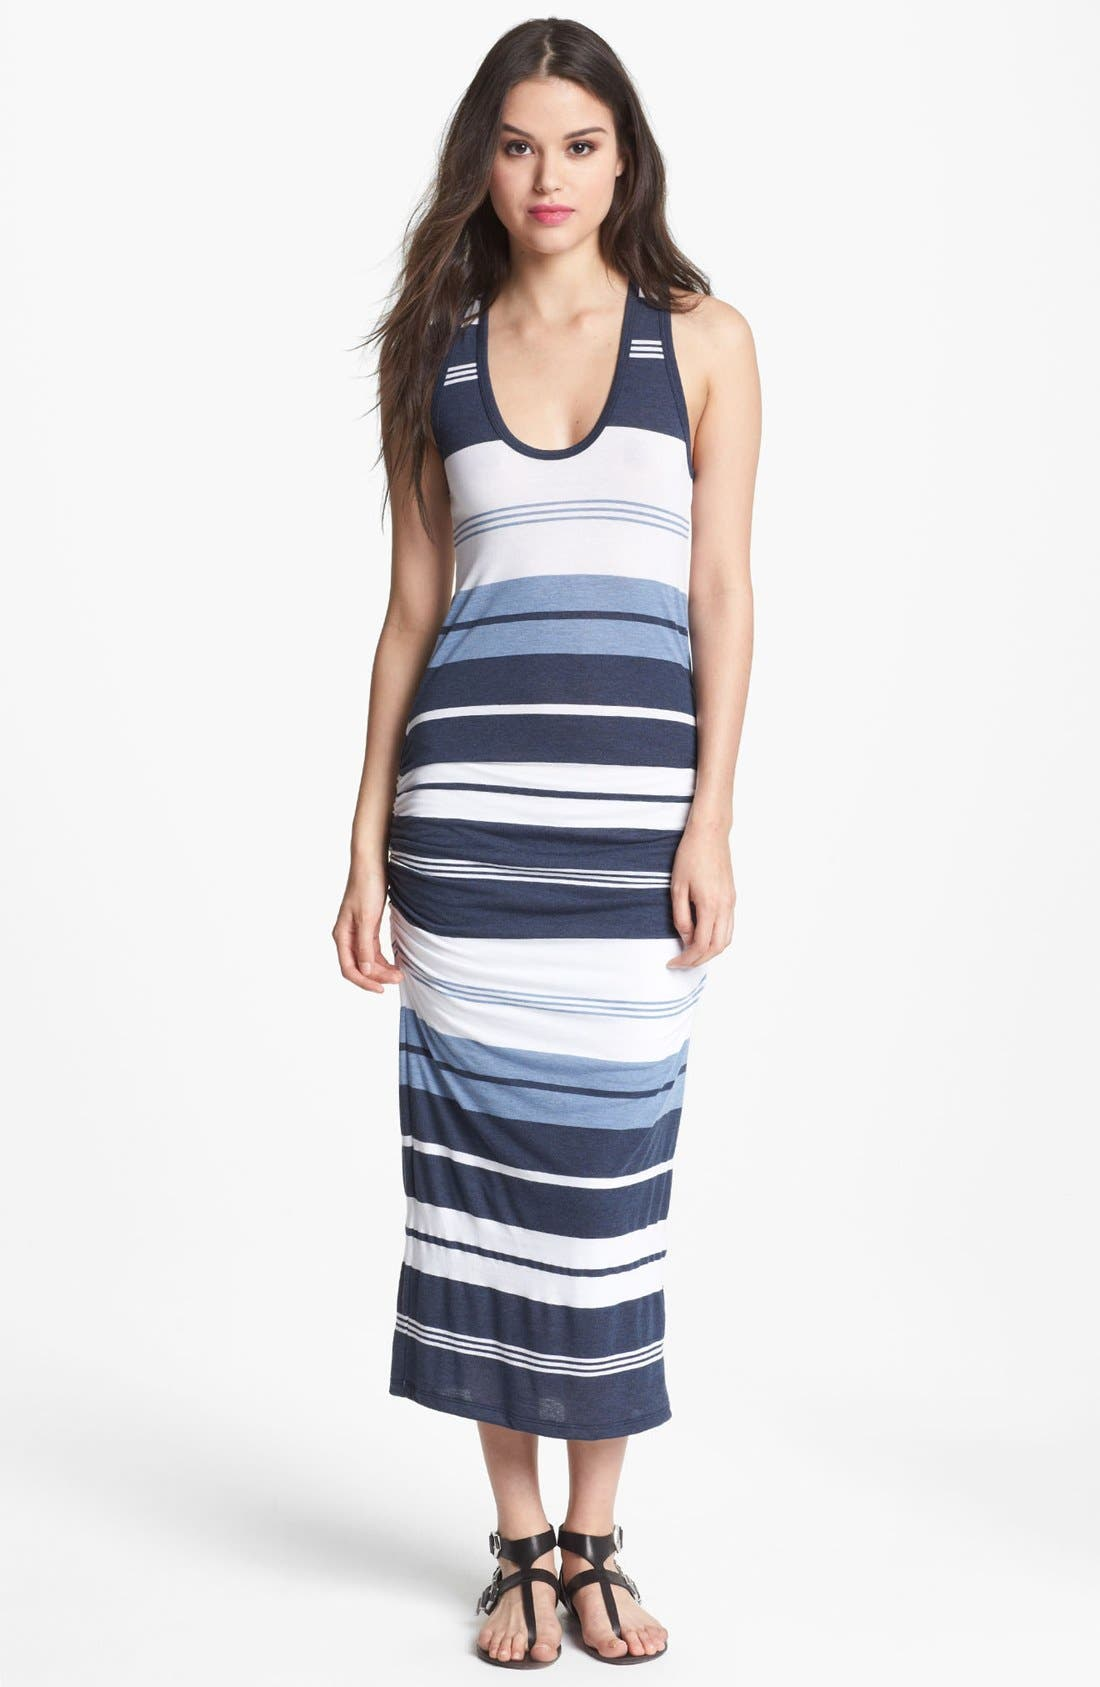 Alternate Image 1 Selected - James Perse 'Pacific Stripe' Racerback Dress